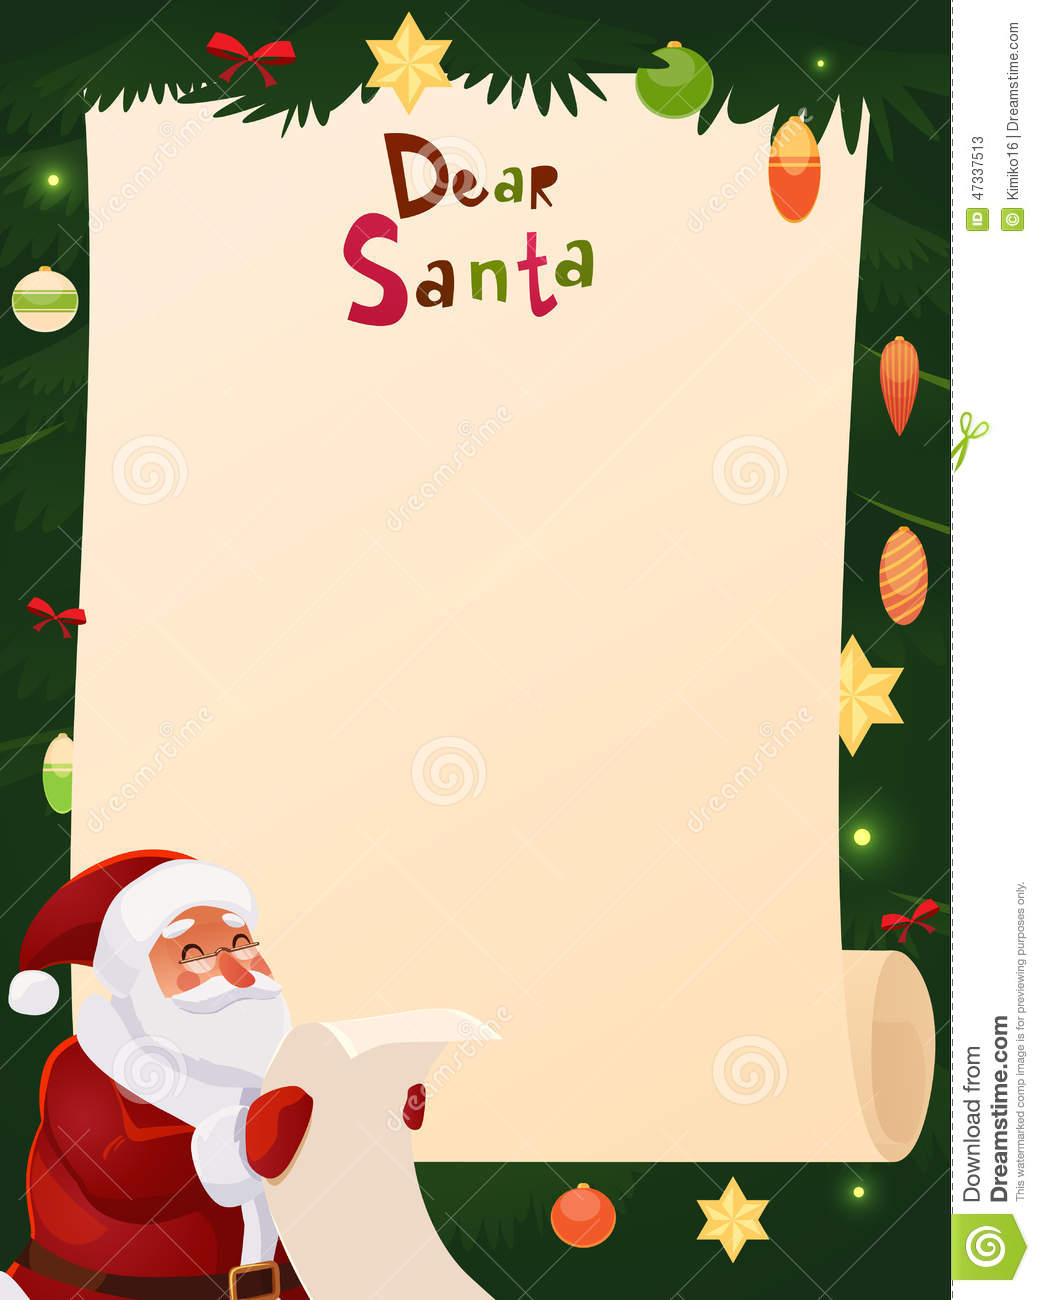 Printable Santa Wish List Sample Of Graph Paper Christmas Wish List Design  Blank Dear Santa 47337513 Printable Santa Wish Listhtml Christmas List  Templates  Christmas Wish List Templates